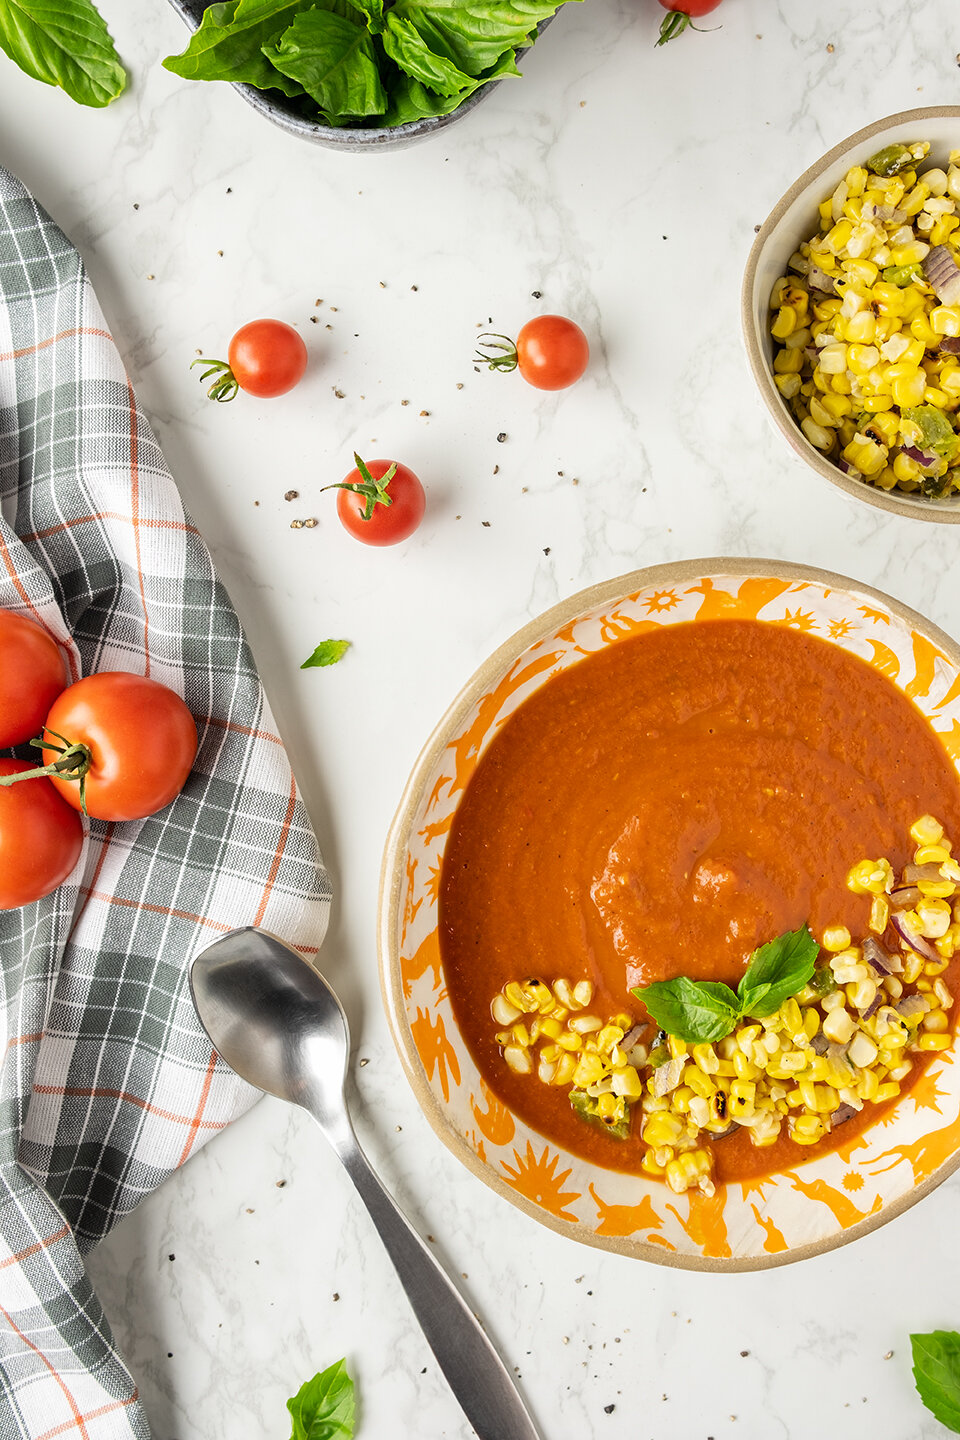 Fresh Tomato Soup with Corn Relish on a marble background.  Tomatoes and basil in the background.